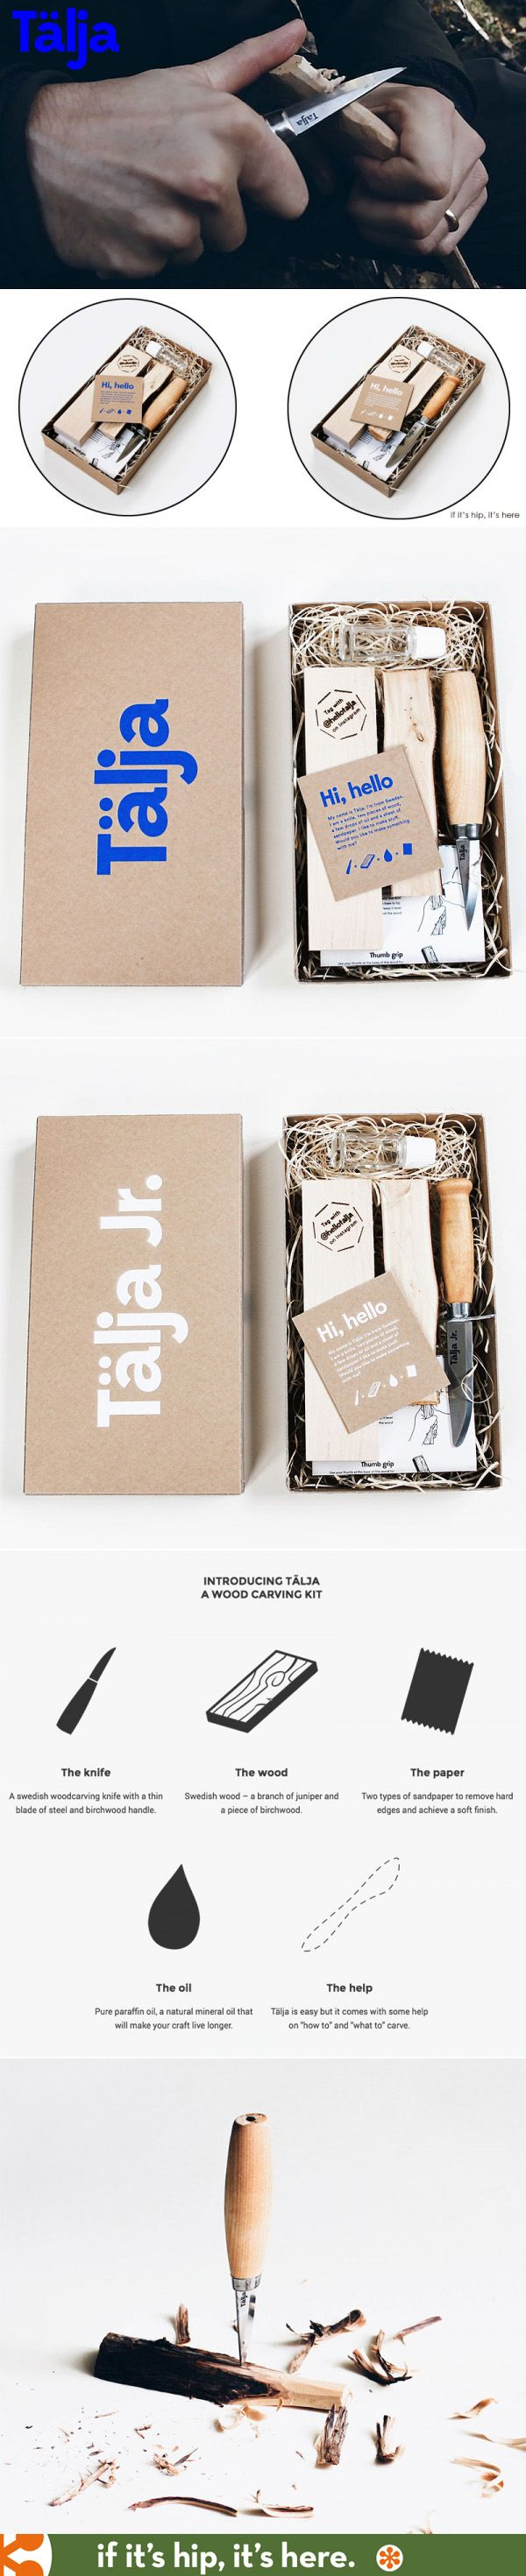 Talja Carving kits show how a few simple items, when packaged together in a well-designed manner, become a cool gift.